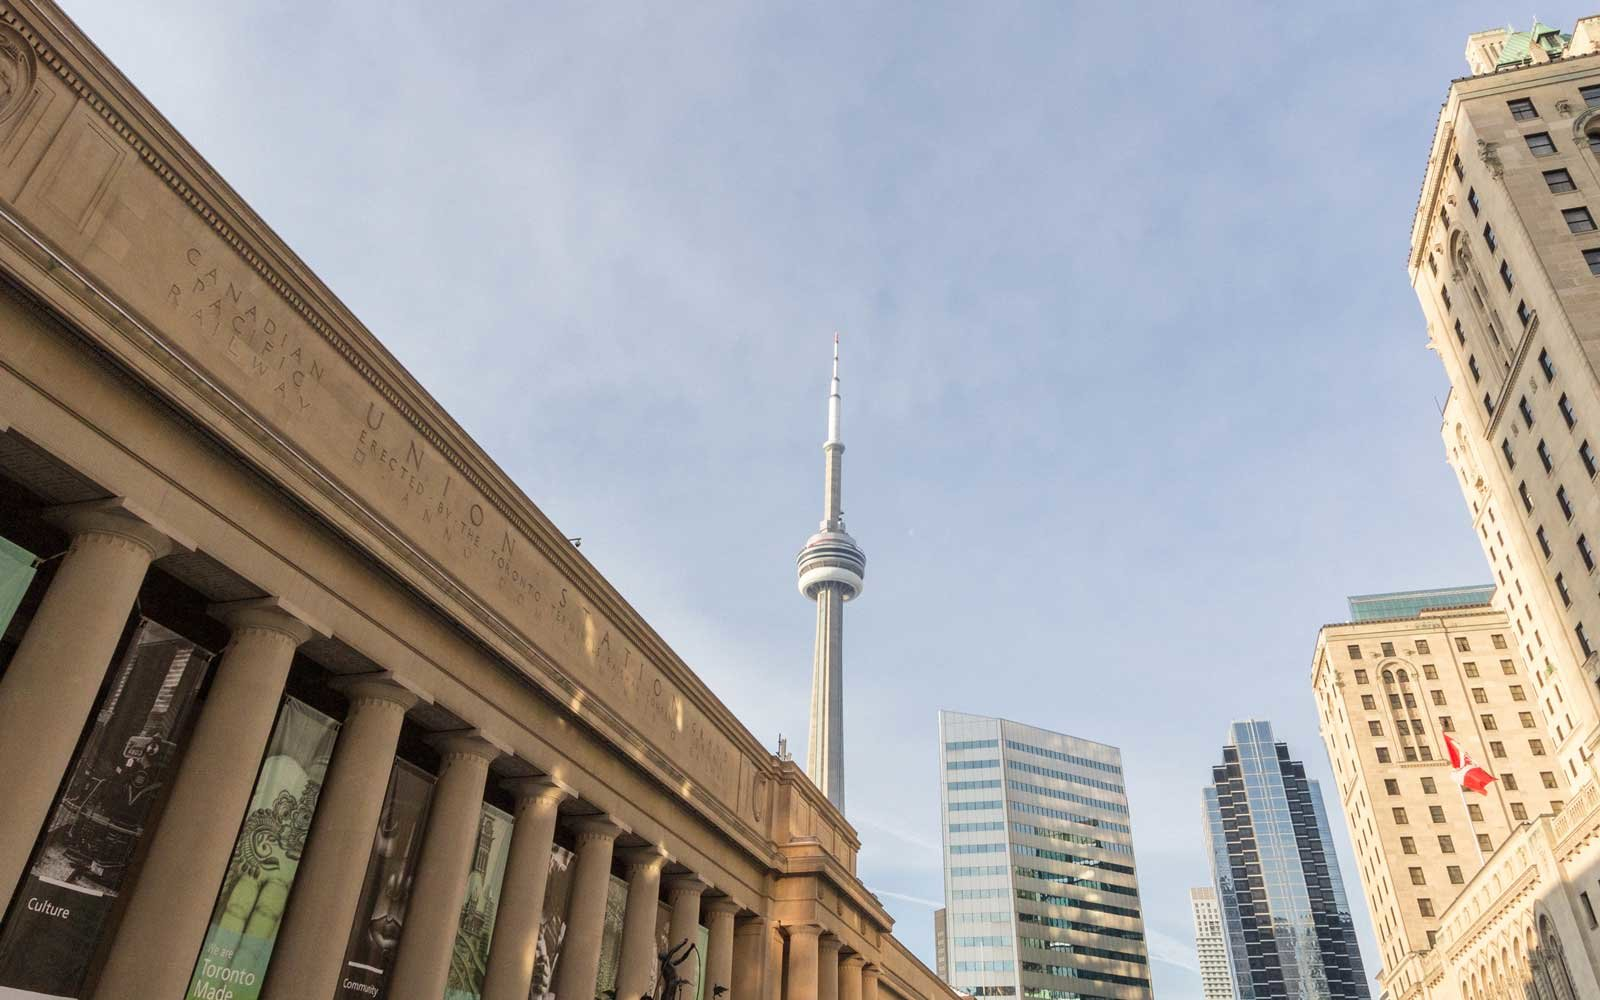 View of the Canadian National Tower (CN Tower) seen from Union Station in Toronto, Ontario